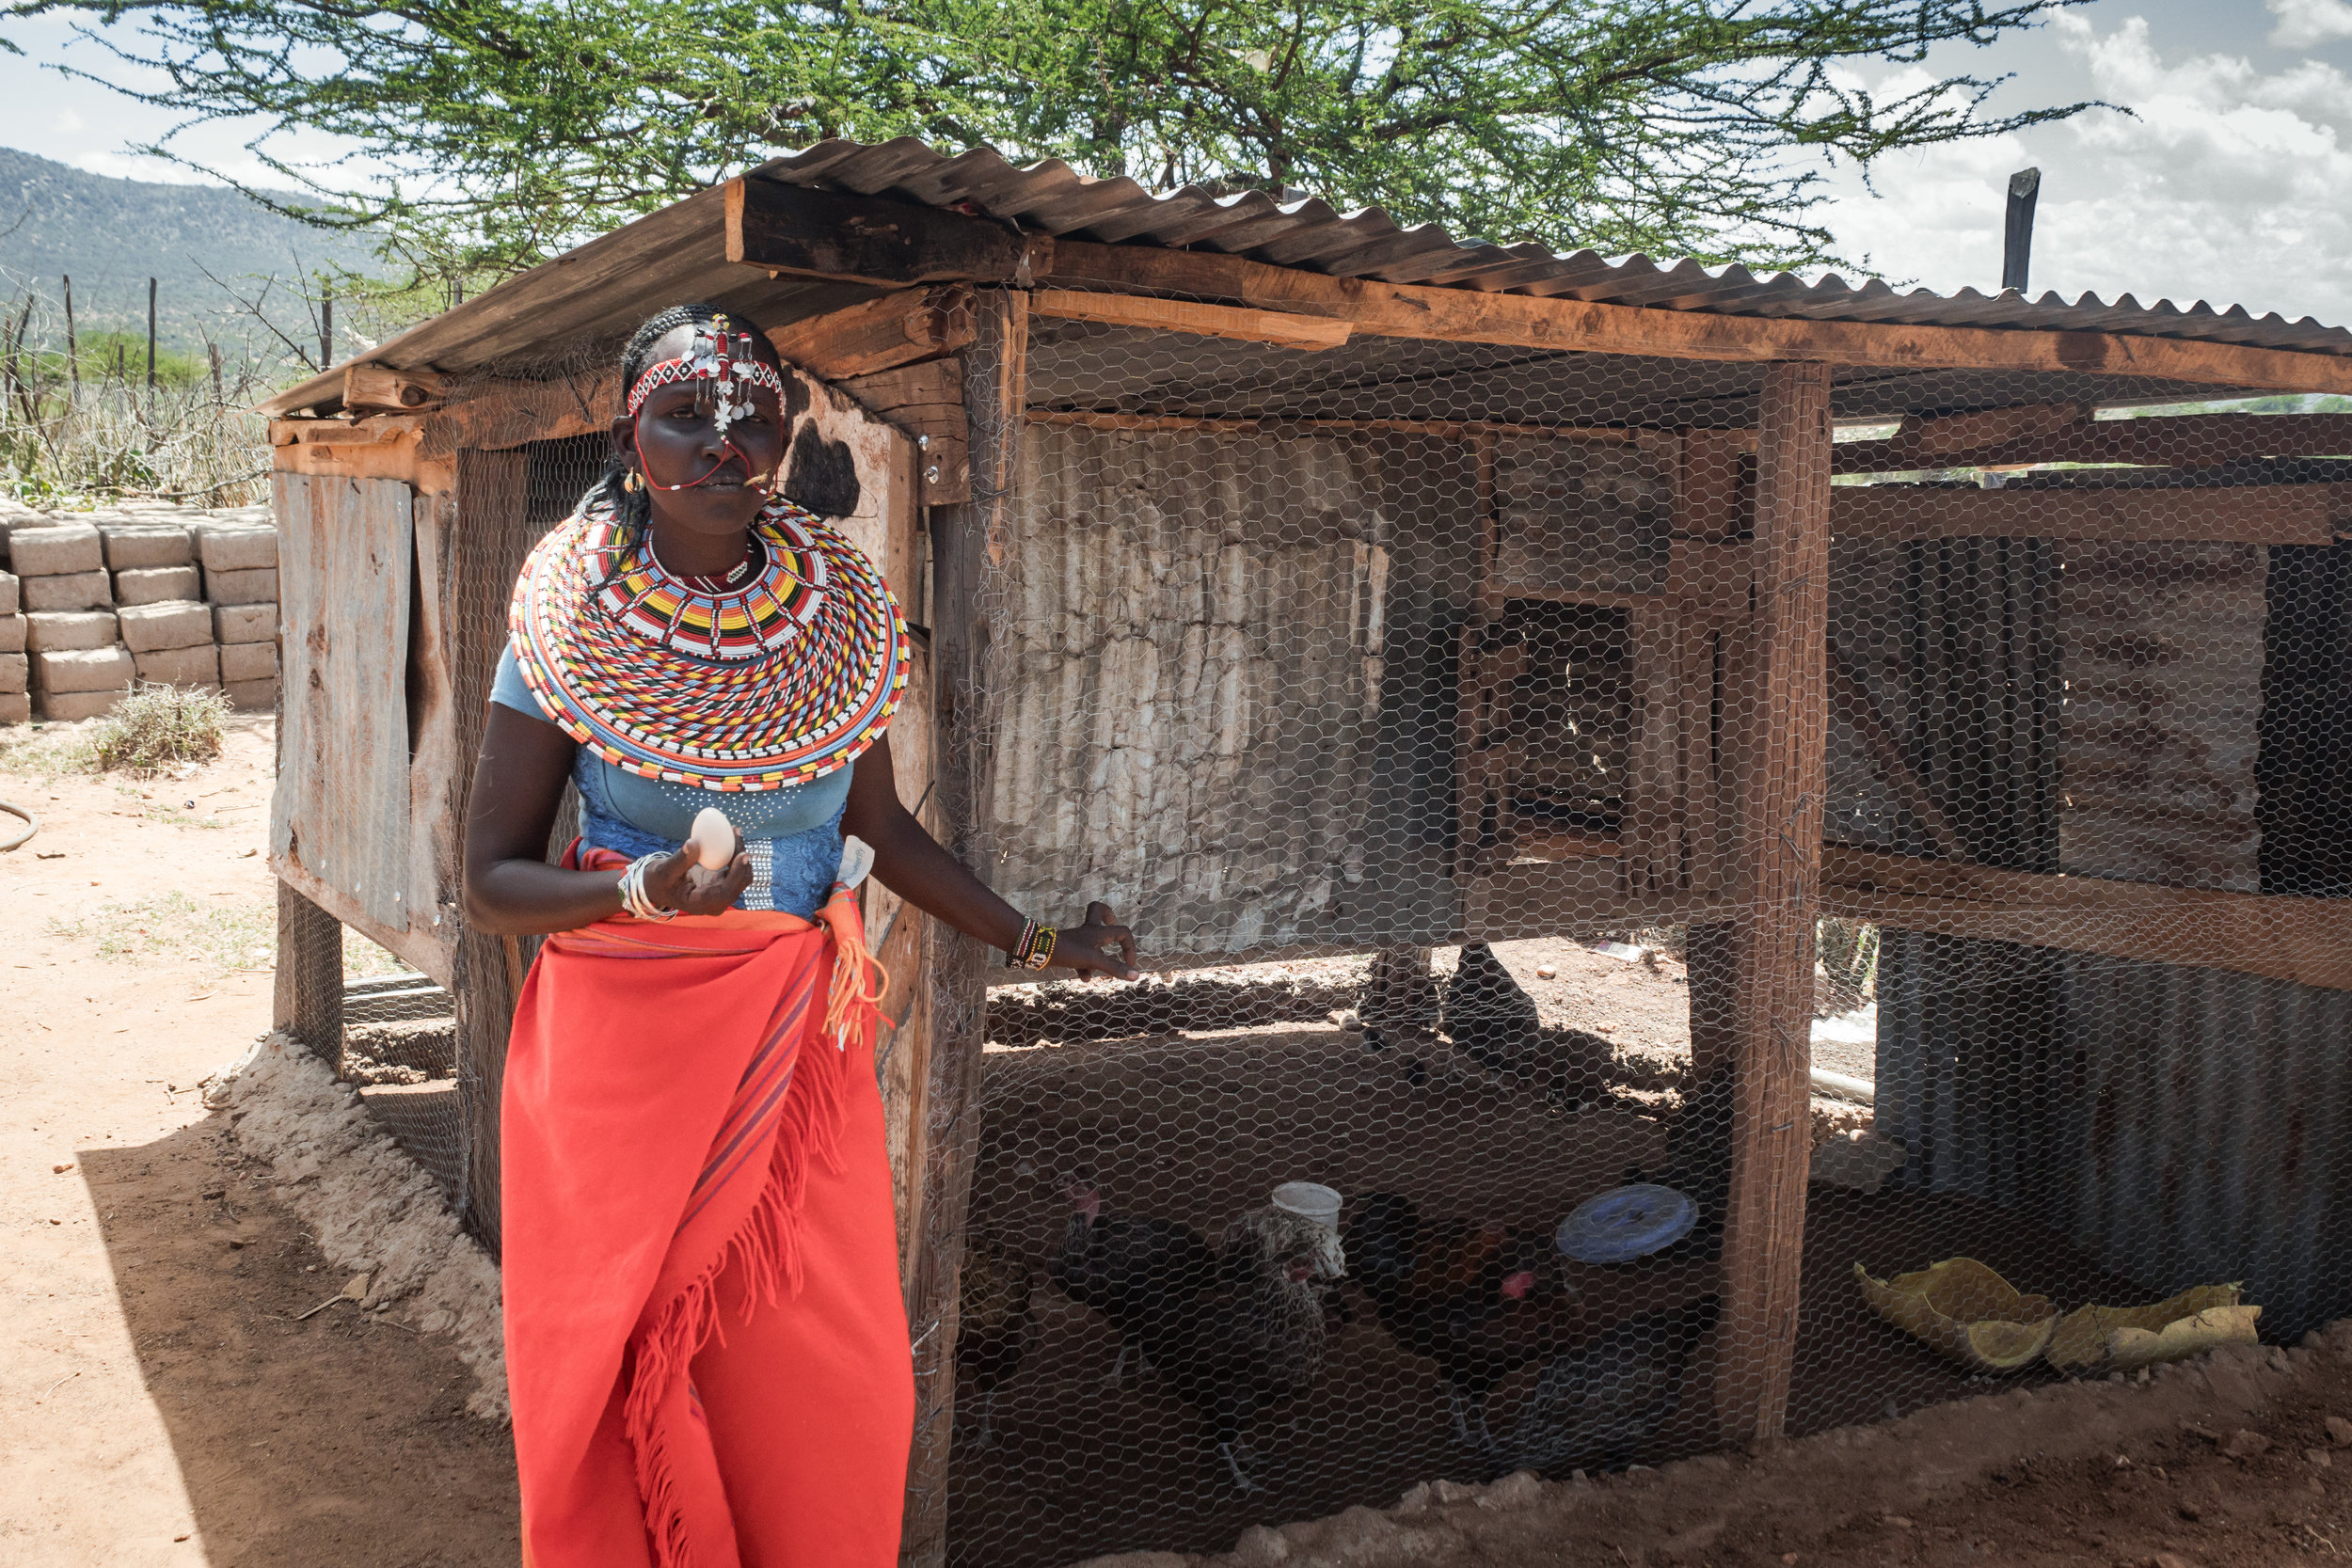 63% of current SACCO members are women, many of whom are accessing loans for the first time to start their own businesses.